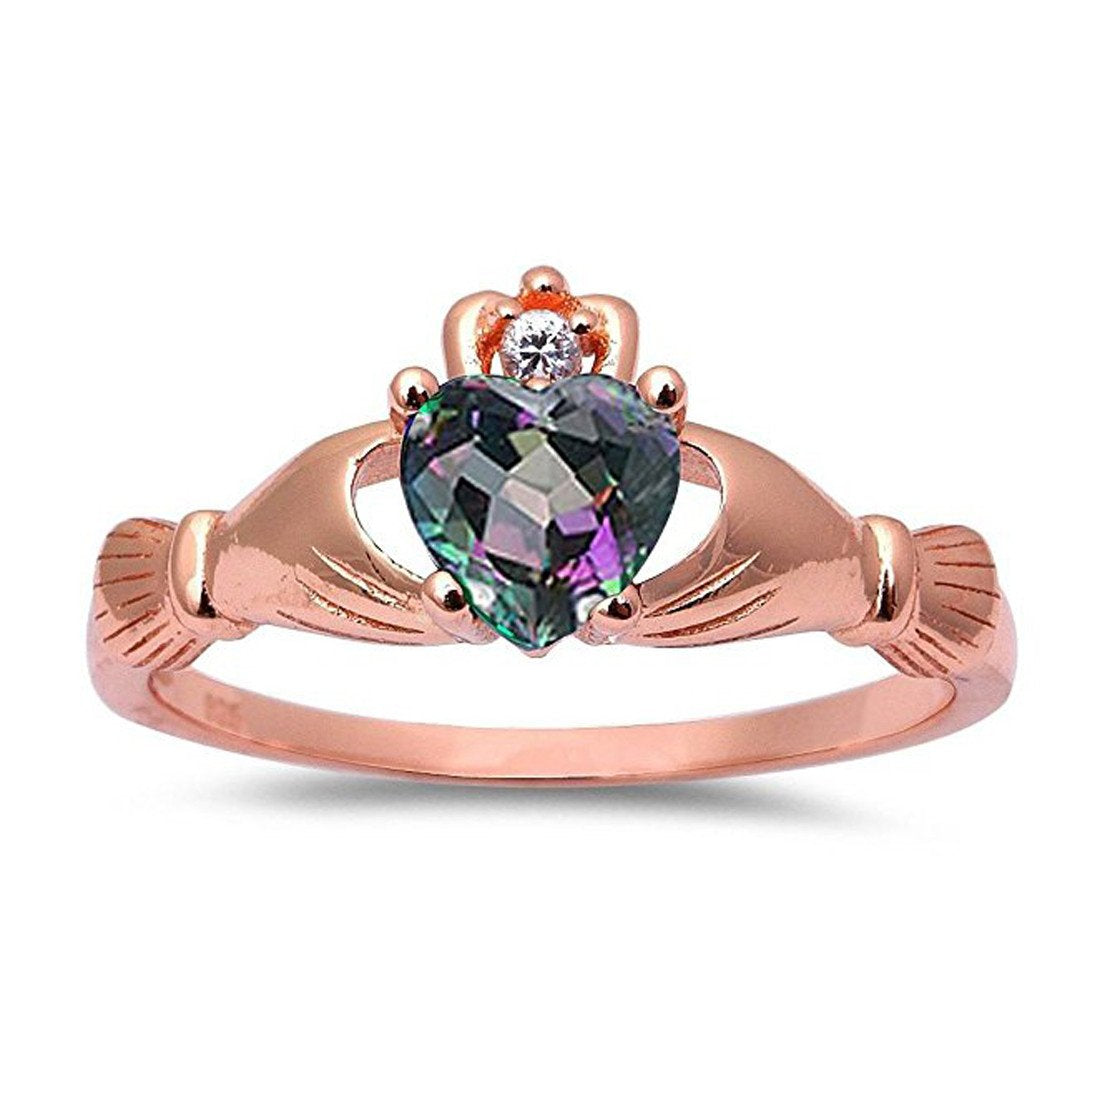 Accent Heart Promise Claddagh Ring Rainbow Cubic Zirconia Round Rose Gold Plated 925 Sterling Silver